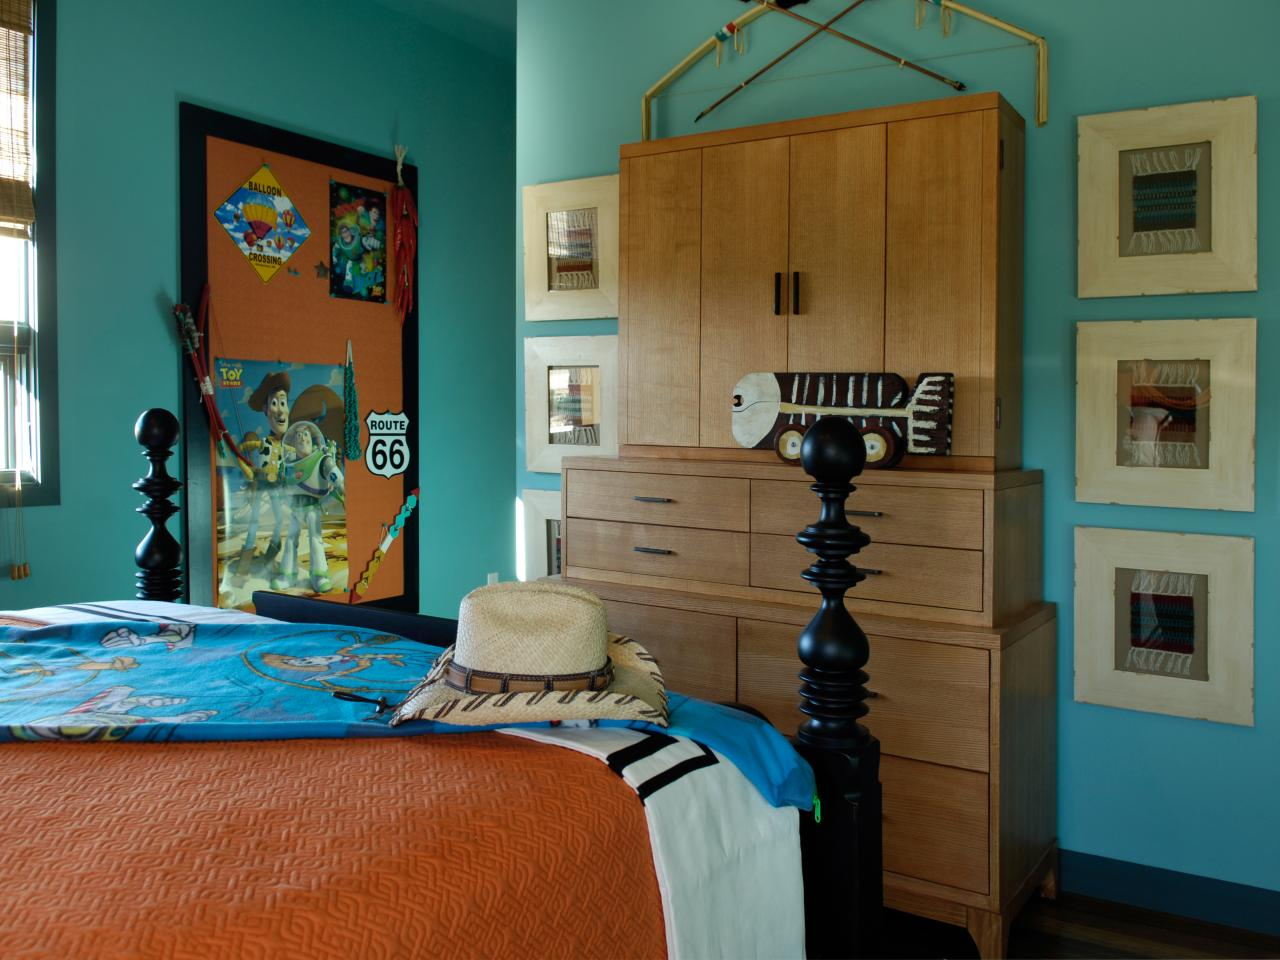 toy story bedroom a smocked orange coverlet is used to cover a memo